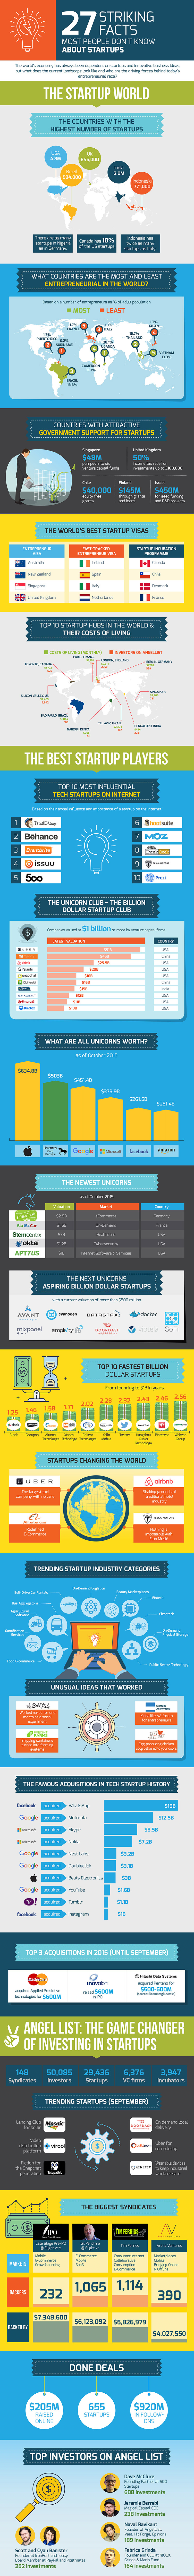 startup_facts